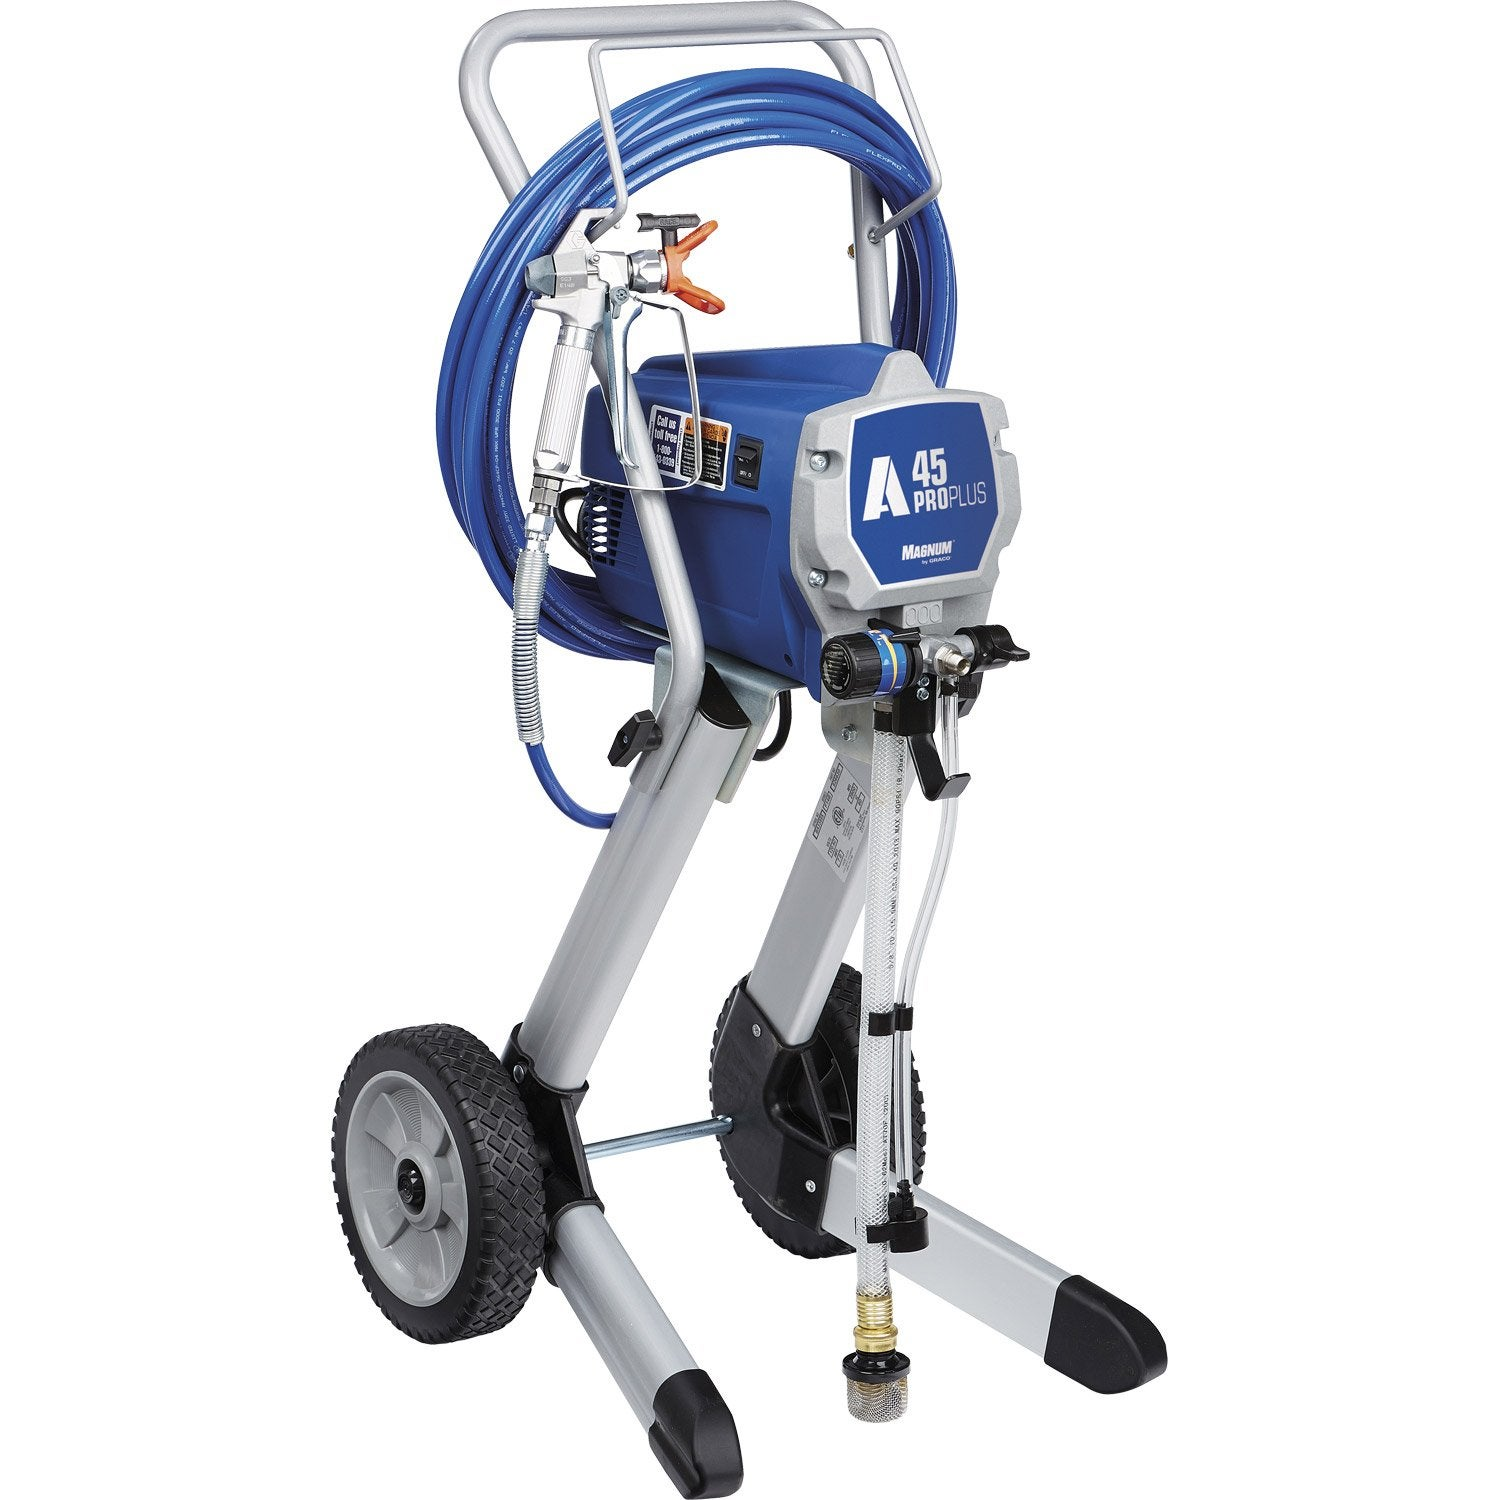 Pompe airless haute pression graco magnum a45 leroy merlin for Peinture haute temperature leroy merlin